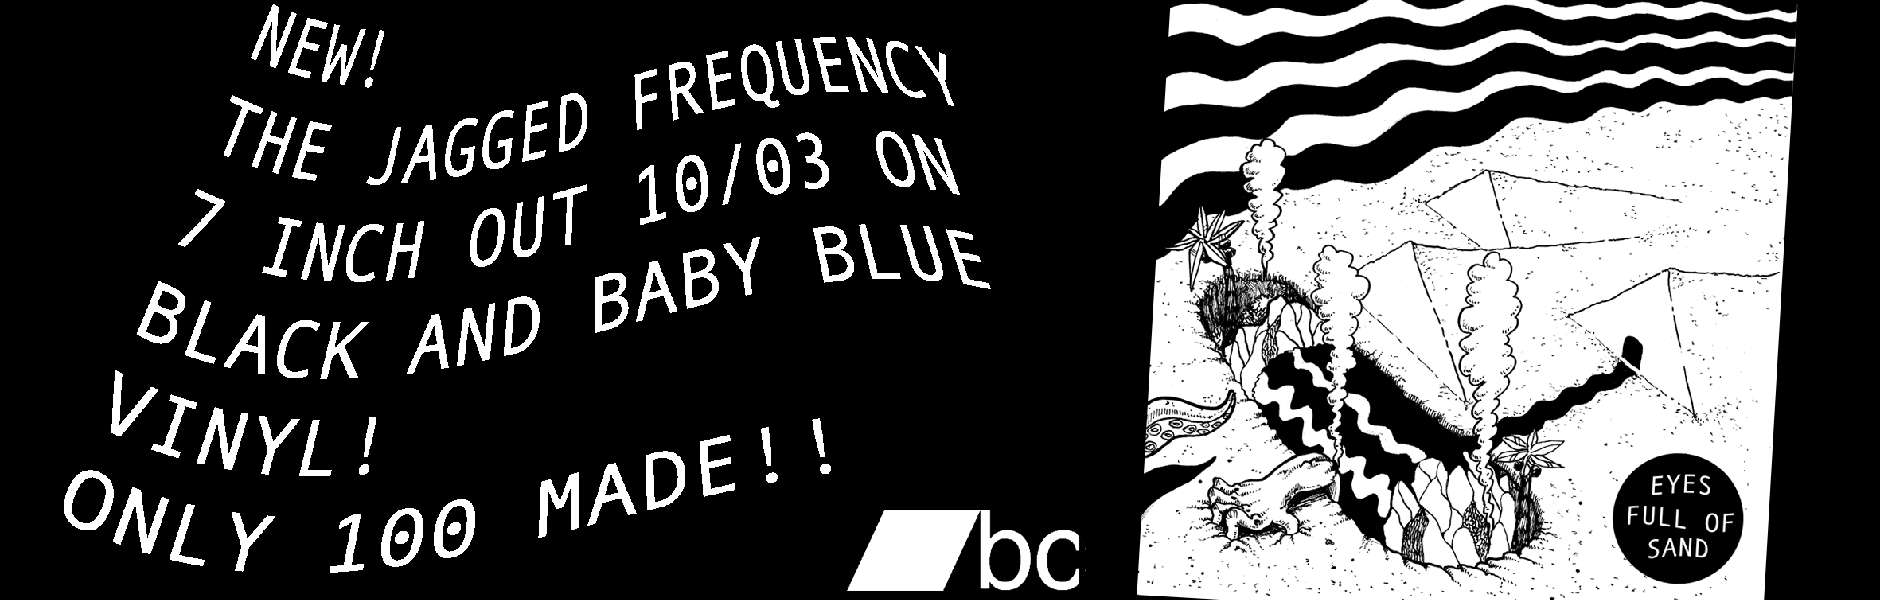 The Jagged Frequency